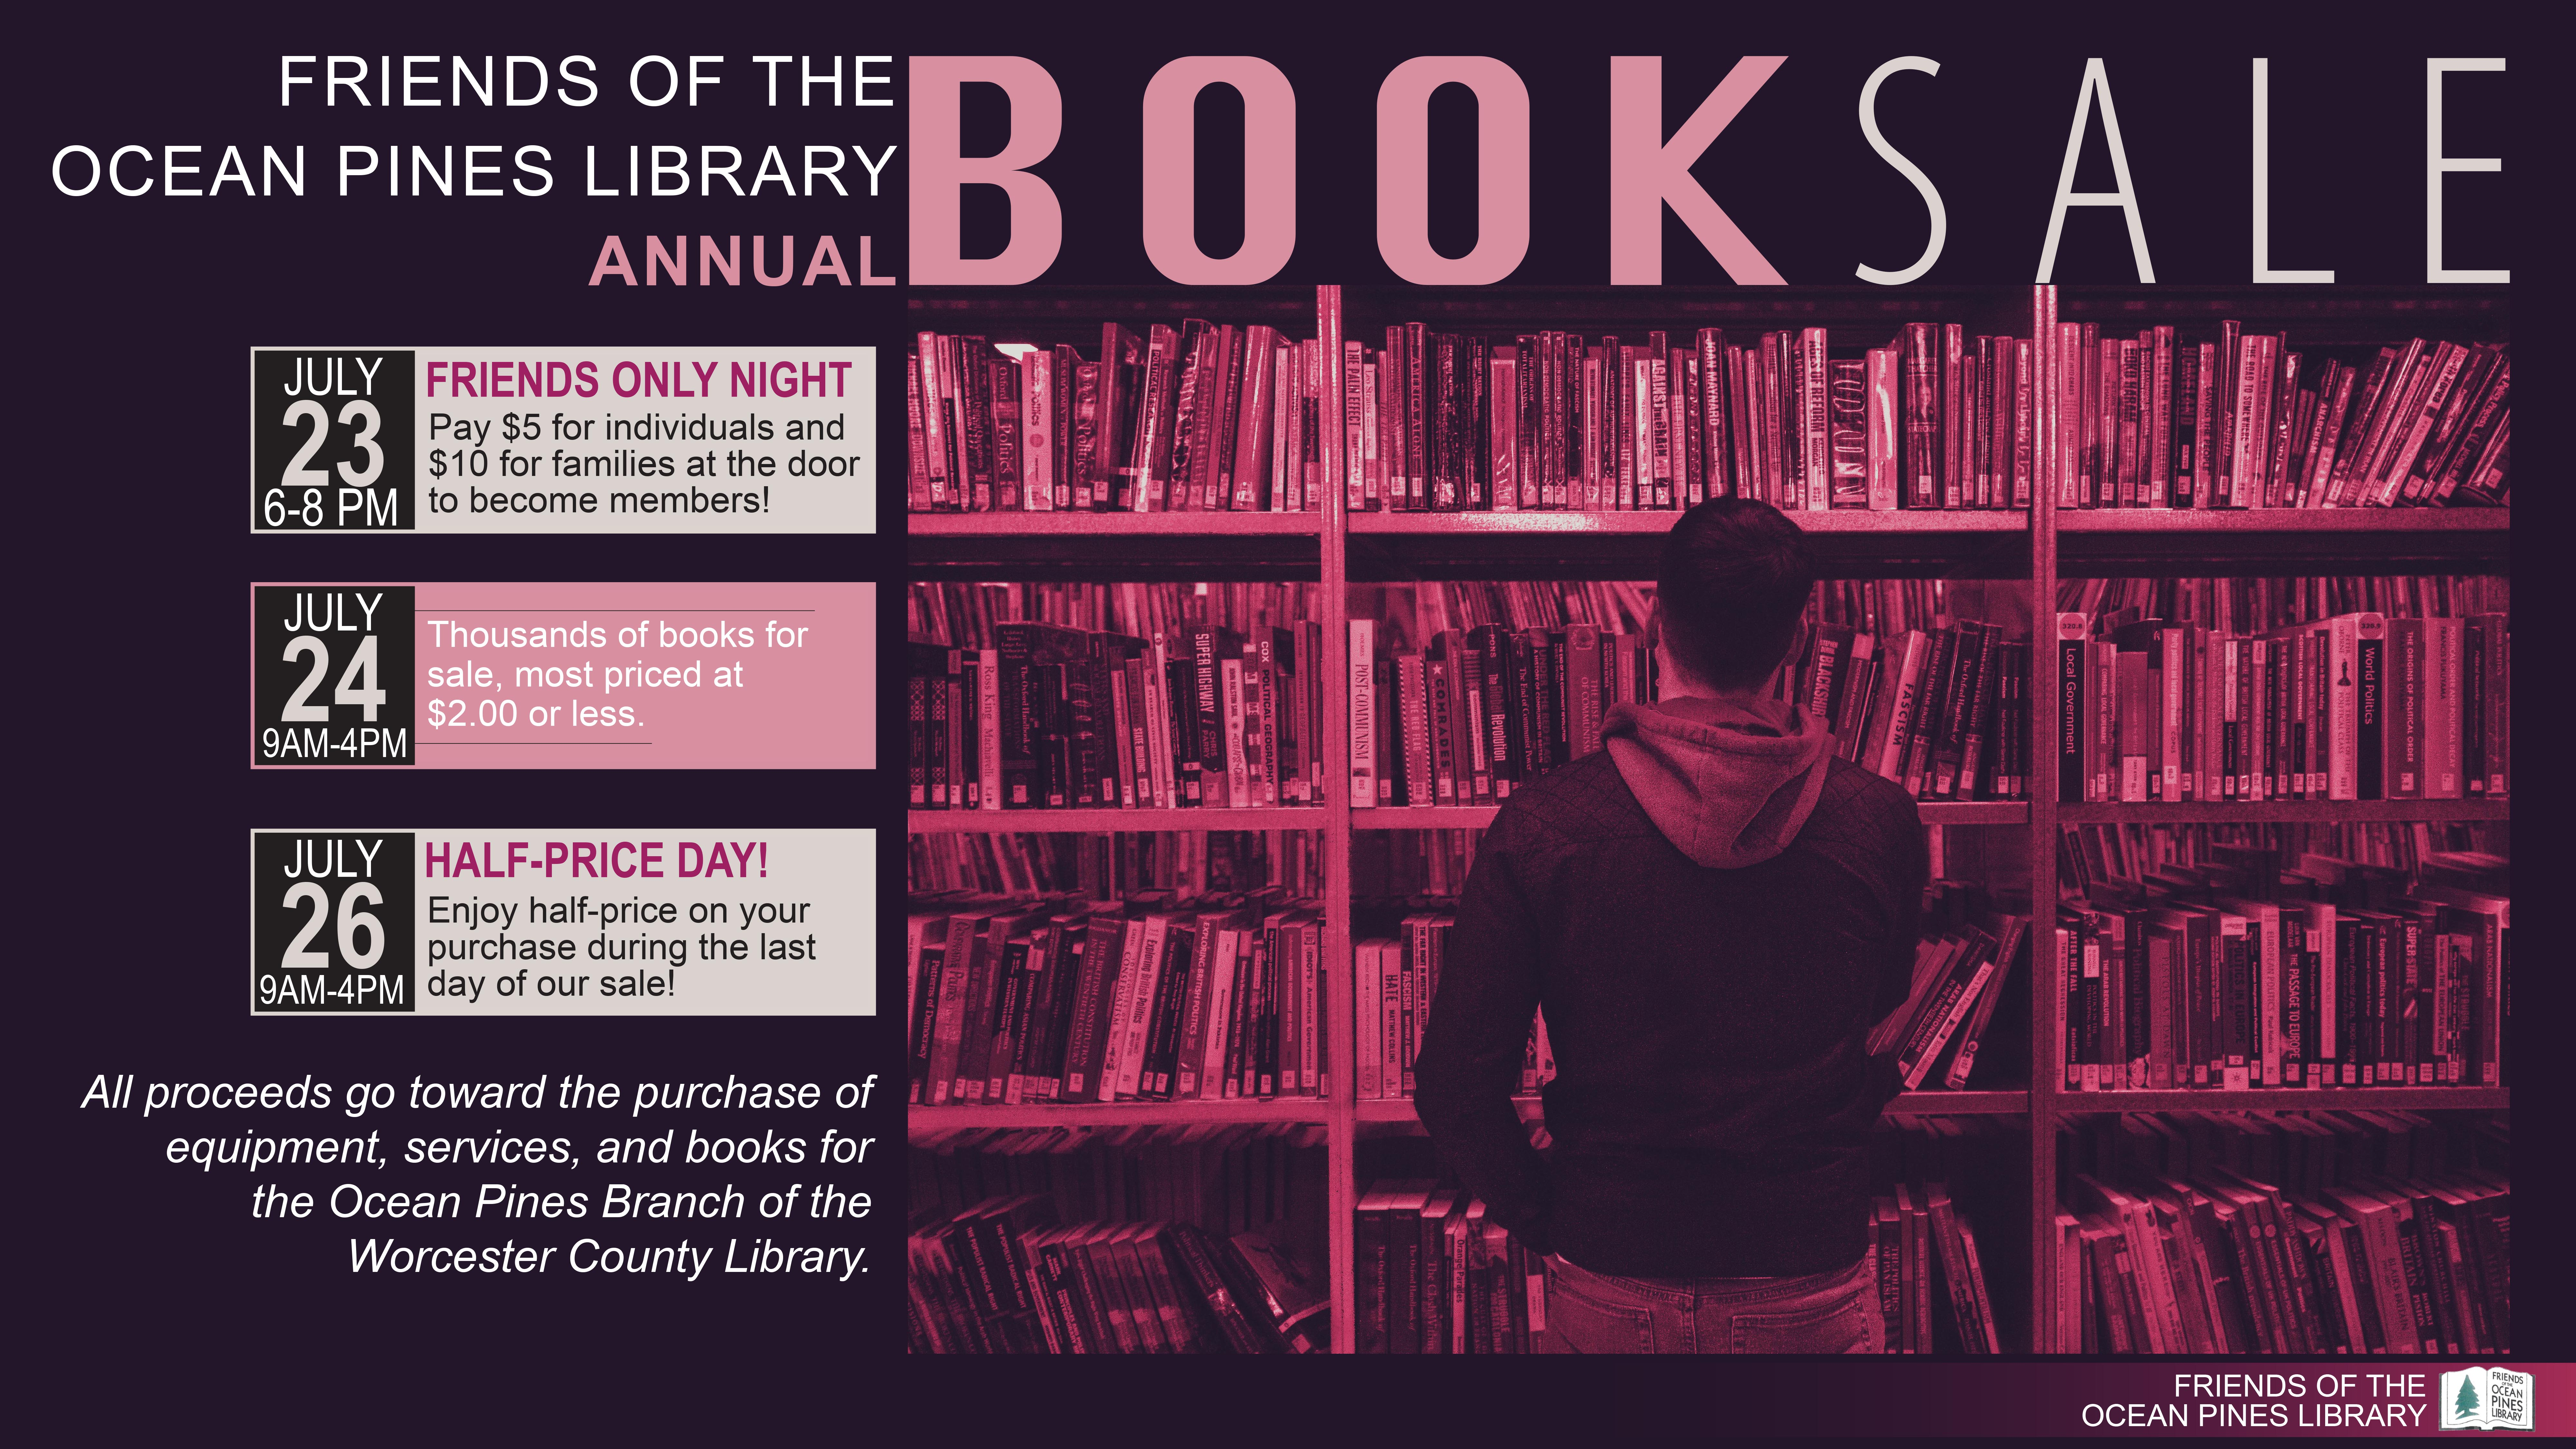 Friends of the Ocean Pines Library Annual Book Sale